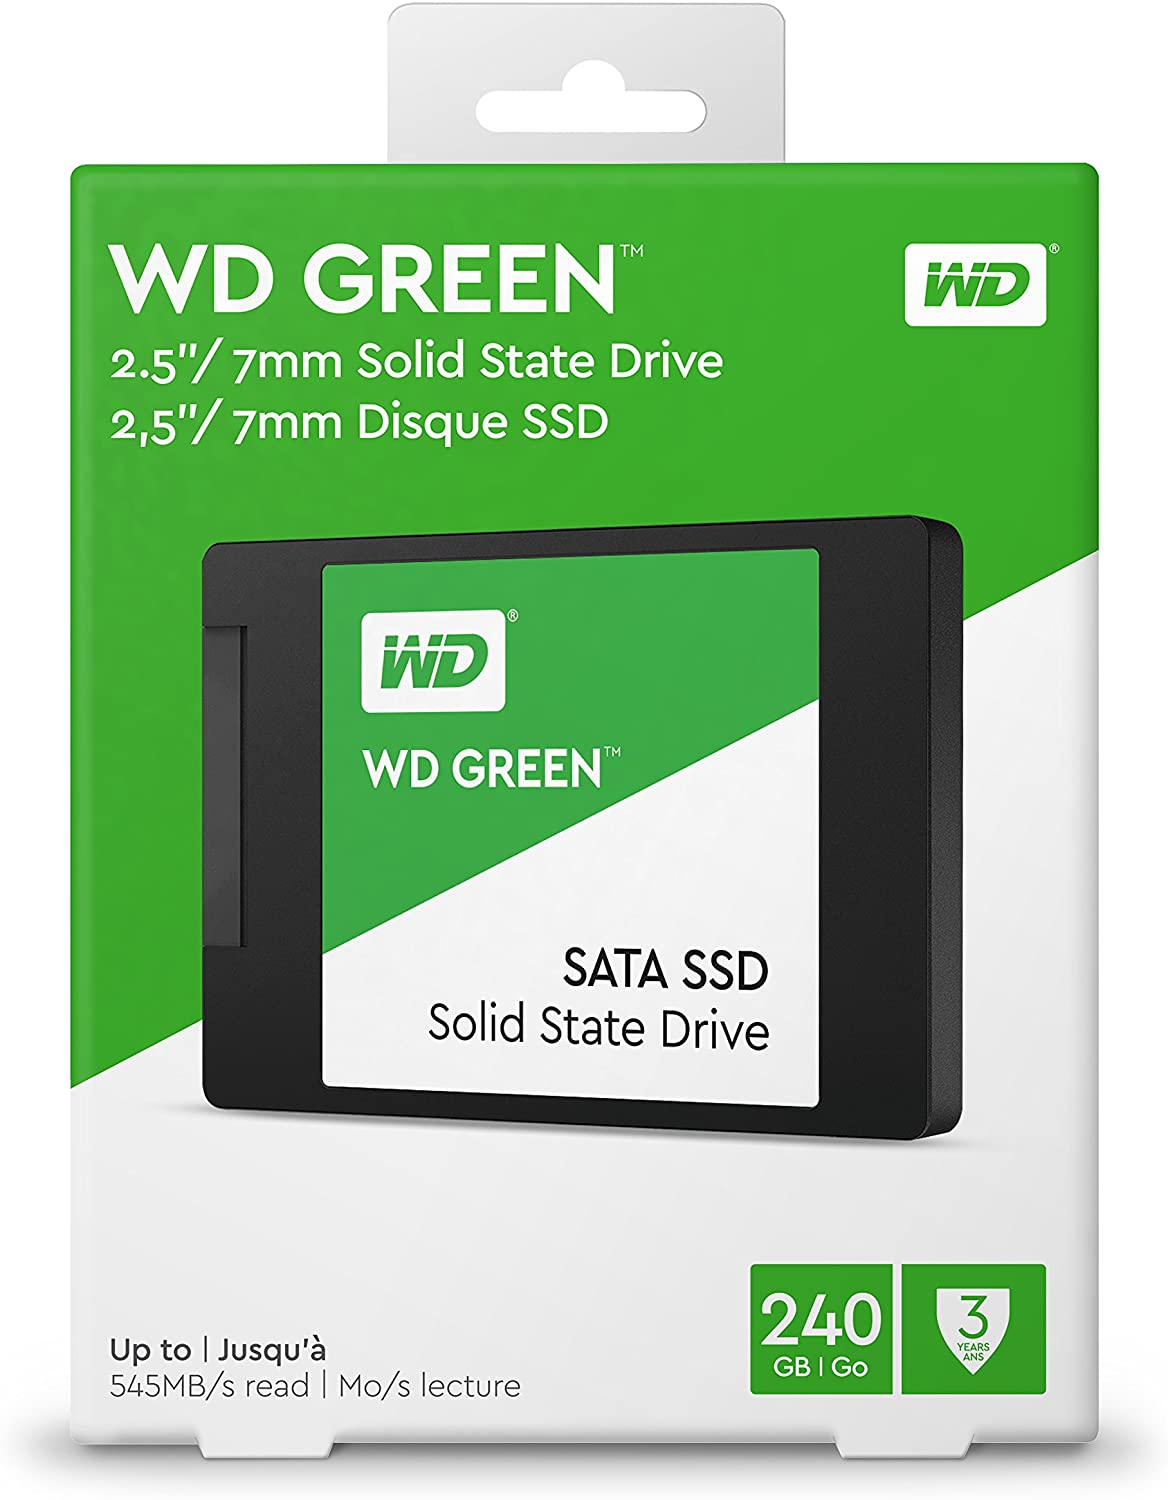 wd-green-240-feature